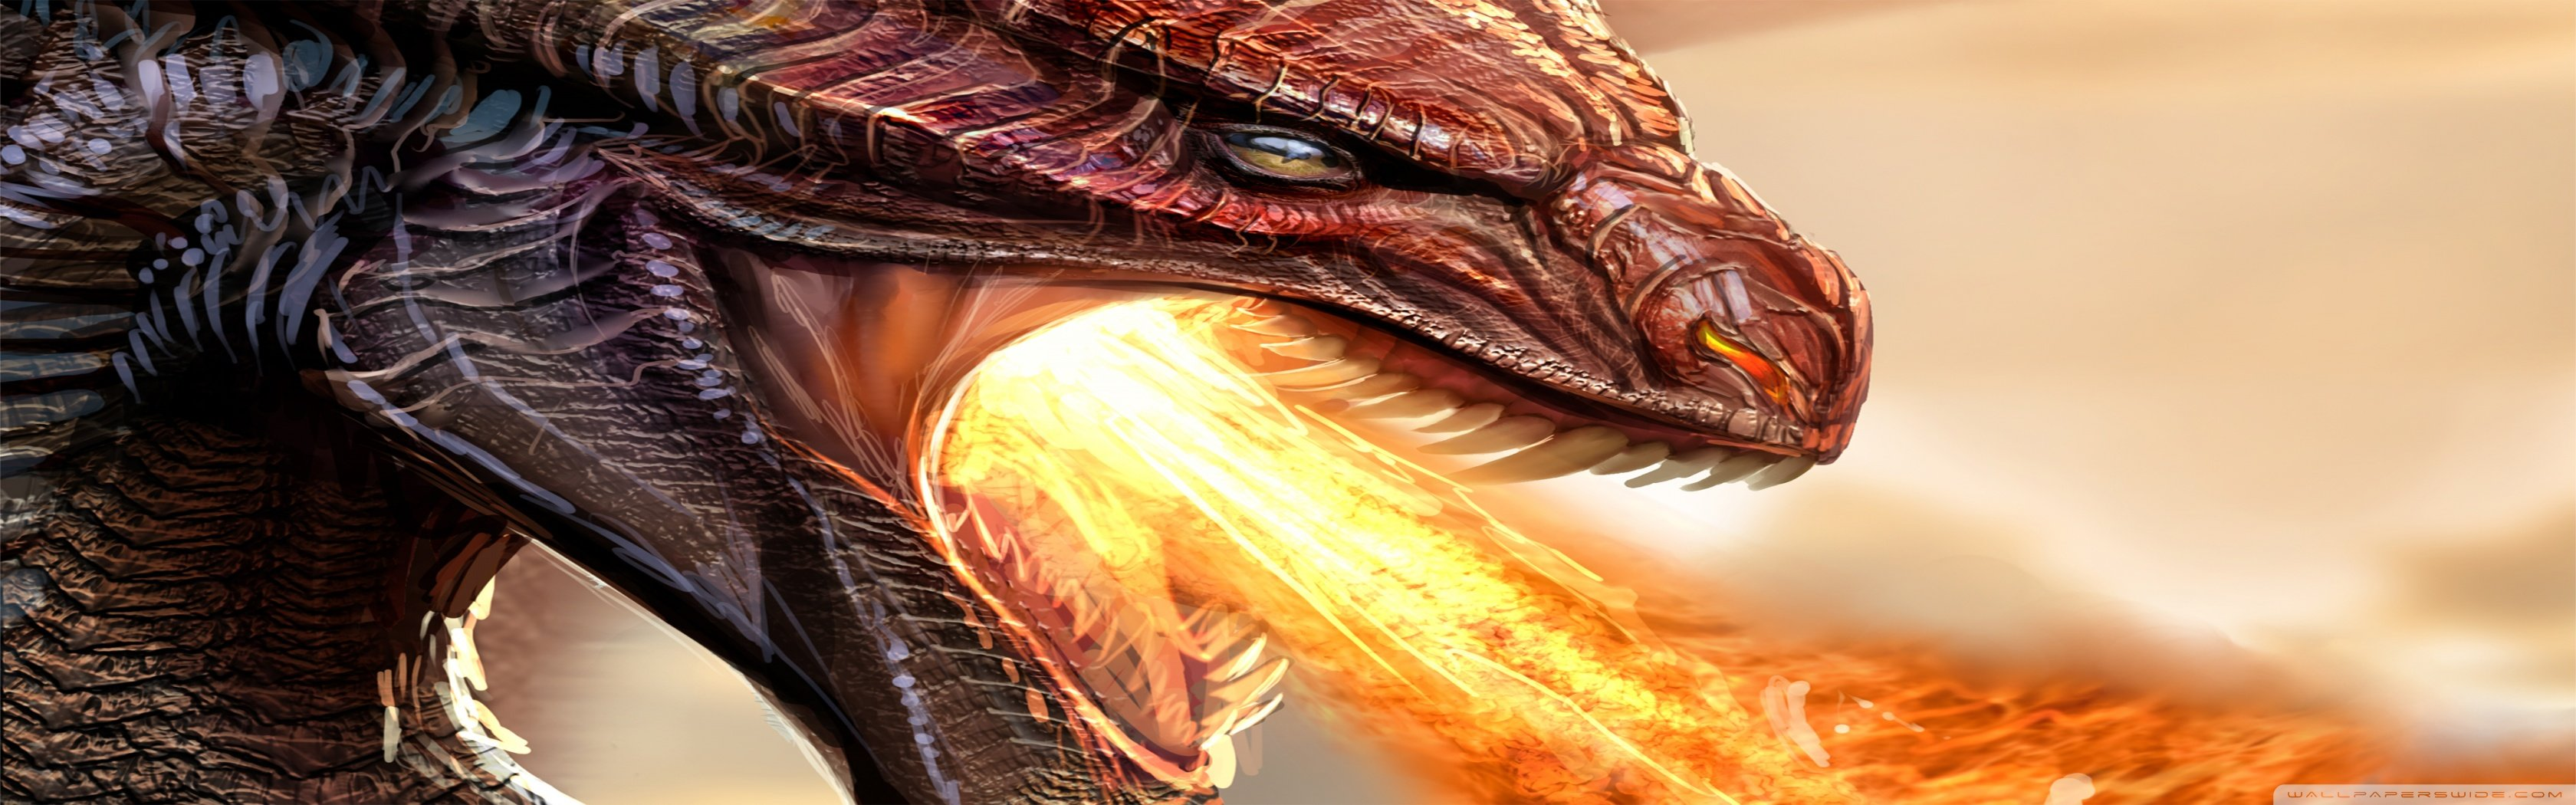 Free download Dragon wallpaper ID:147924 dual monitor 1680x1050 for PC